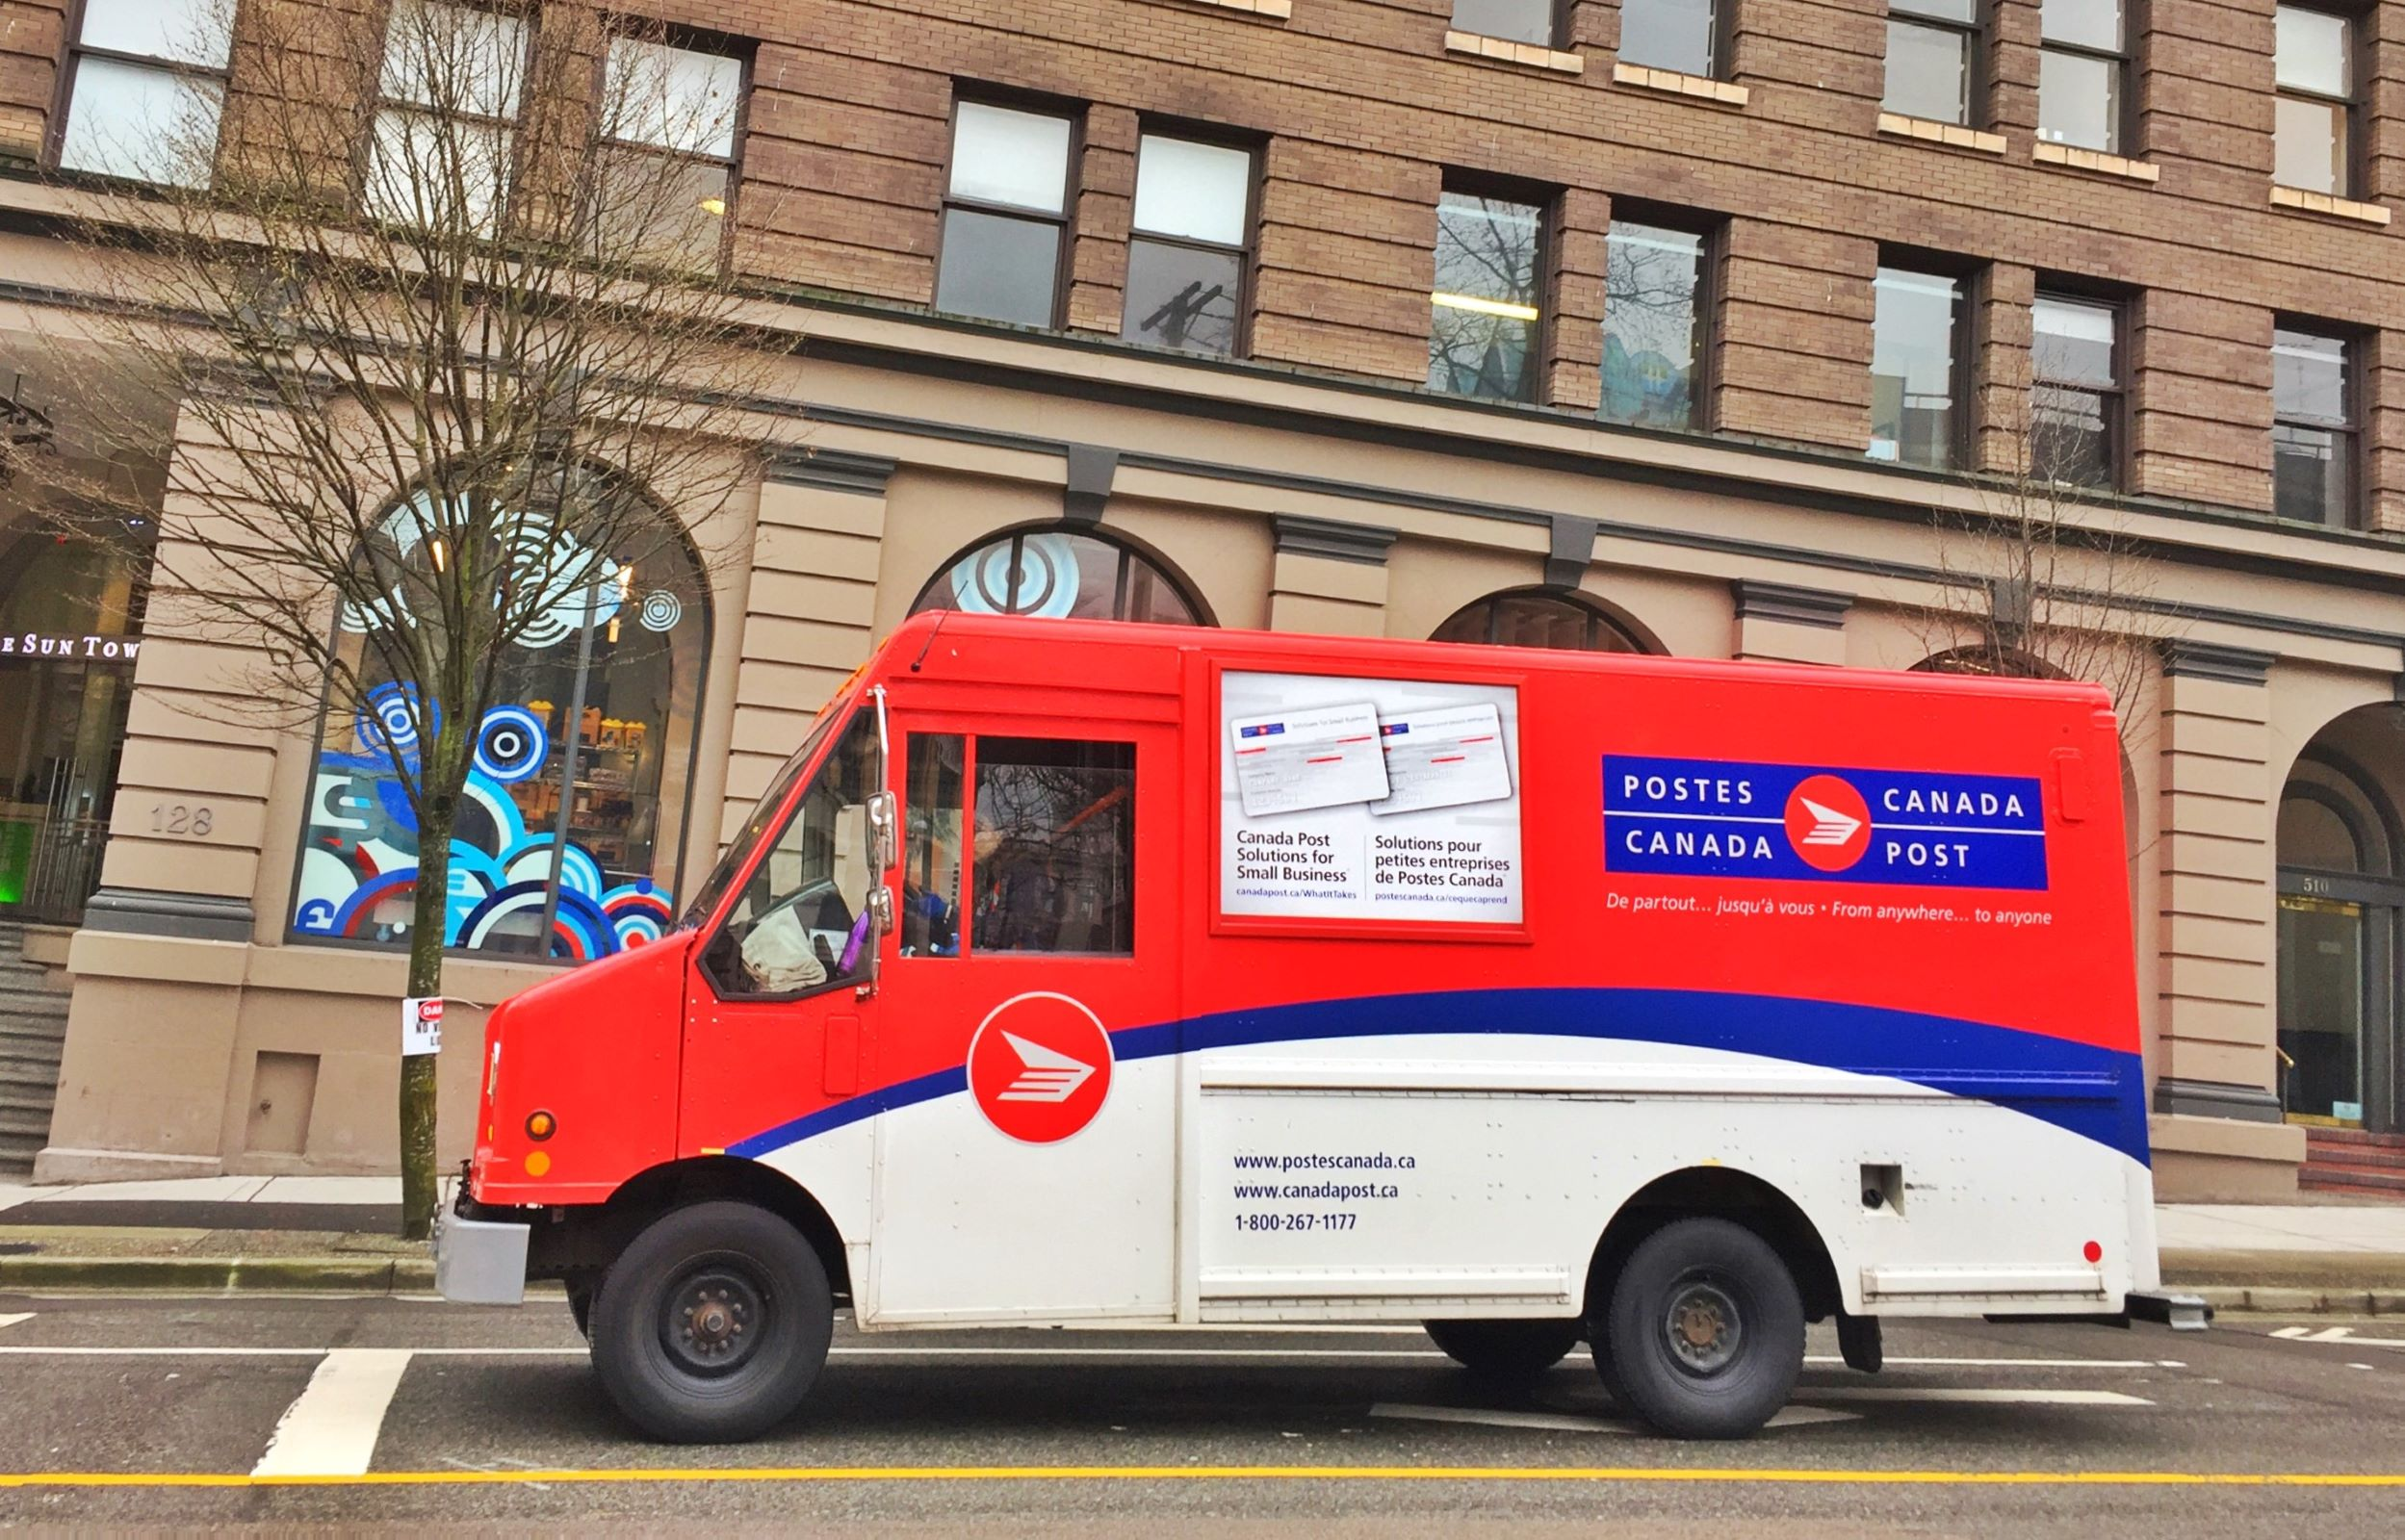 Democrats Worried Canadian Post Office Won't Deliver Mail-In Immigration Applications in Time